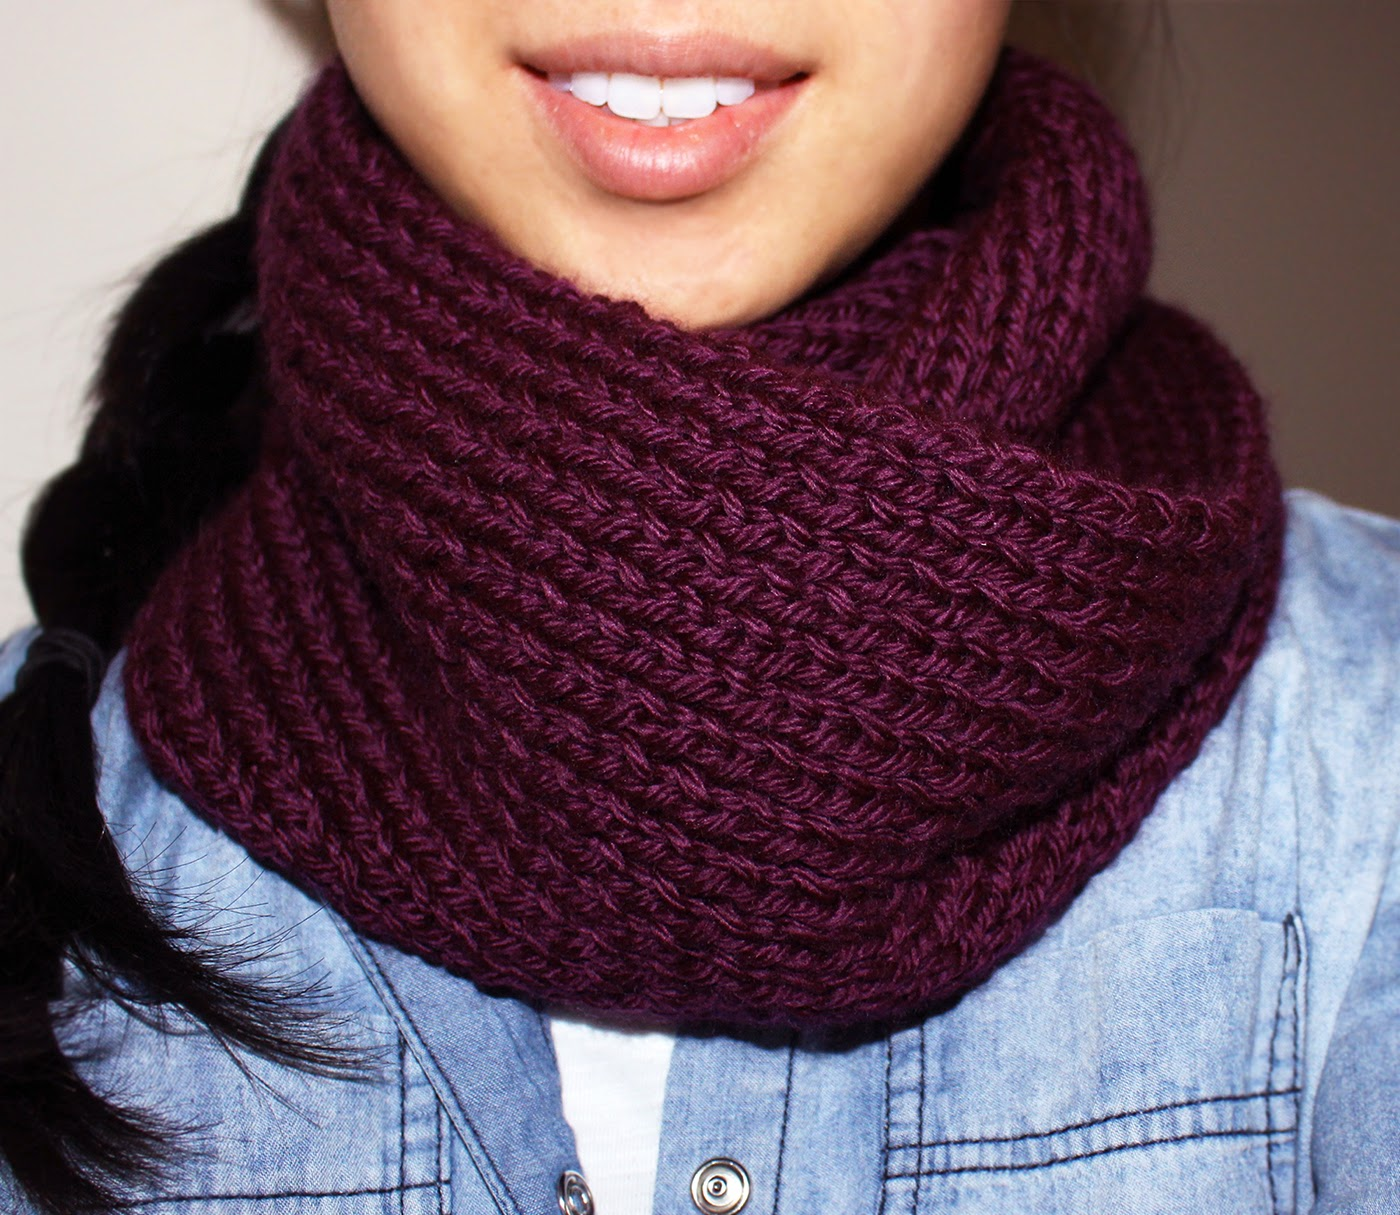 Knitting Pattern For Basic Scarf : Purllin: Acai Infinity Circle Scarf [free knitting pattern]